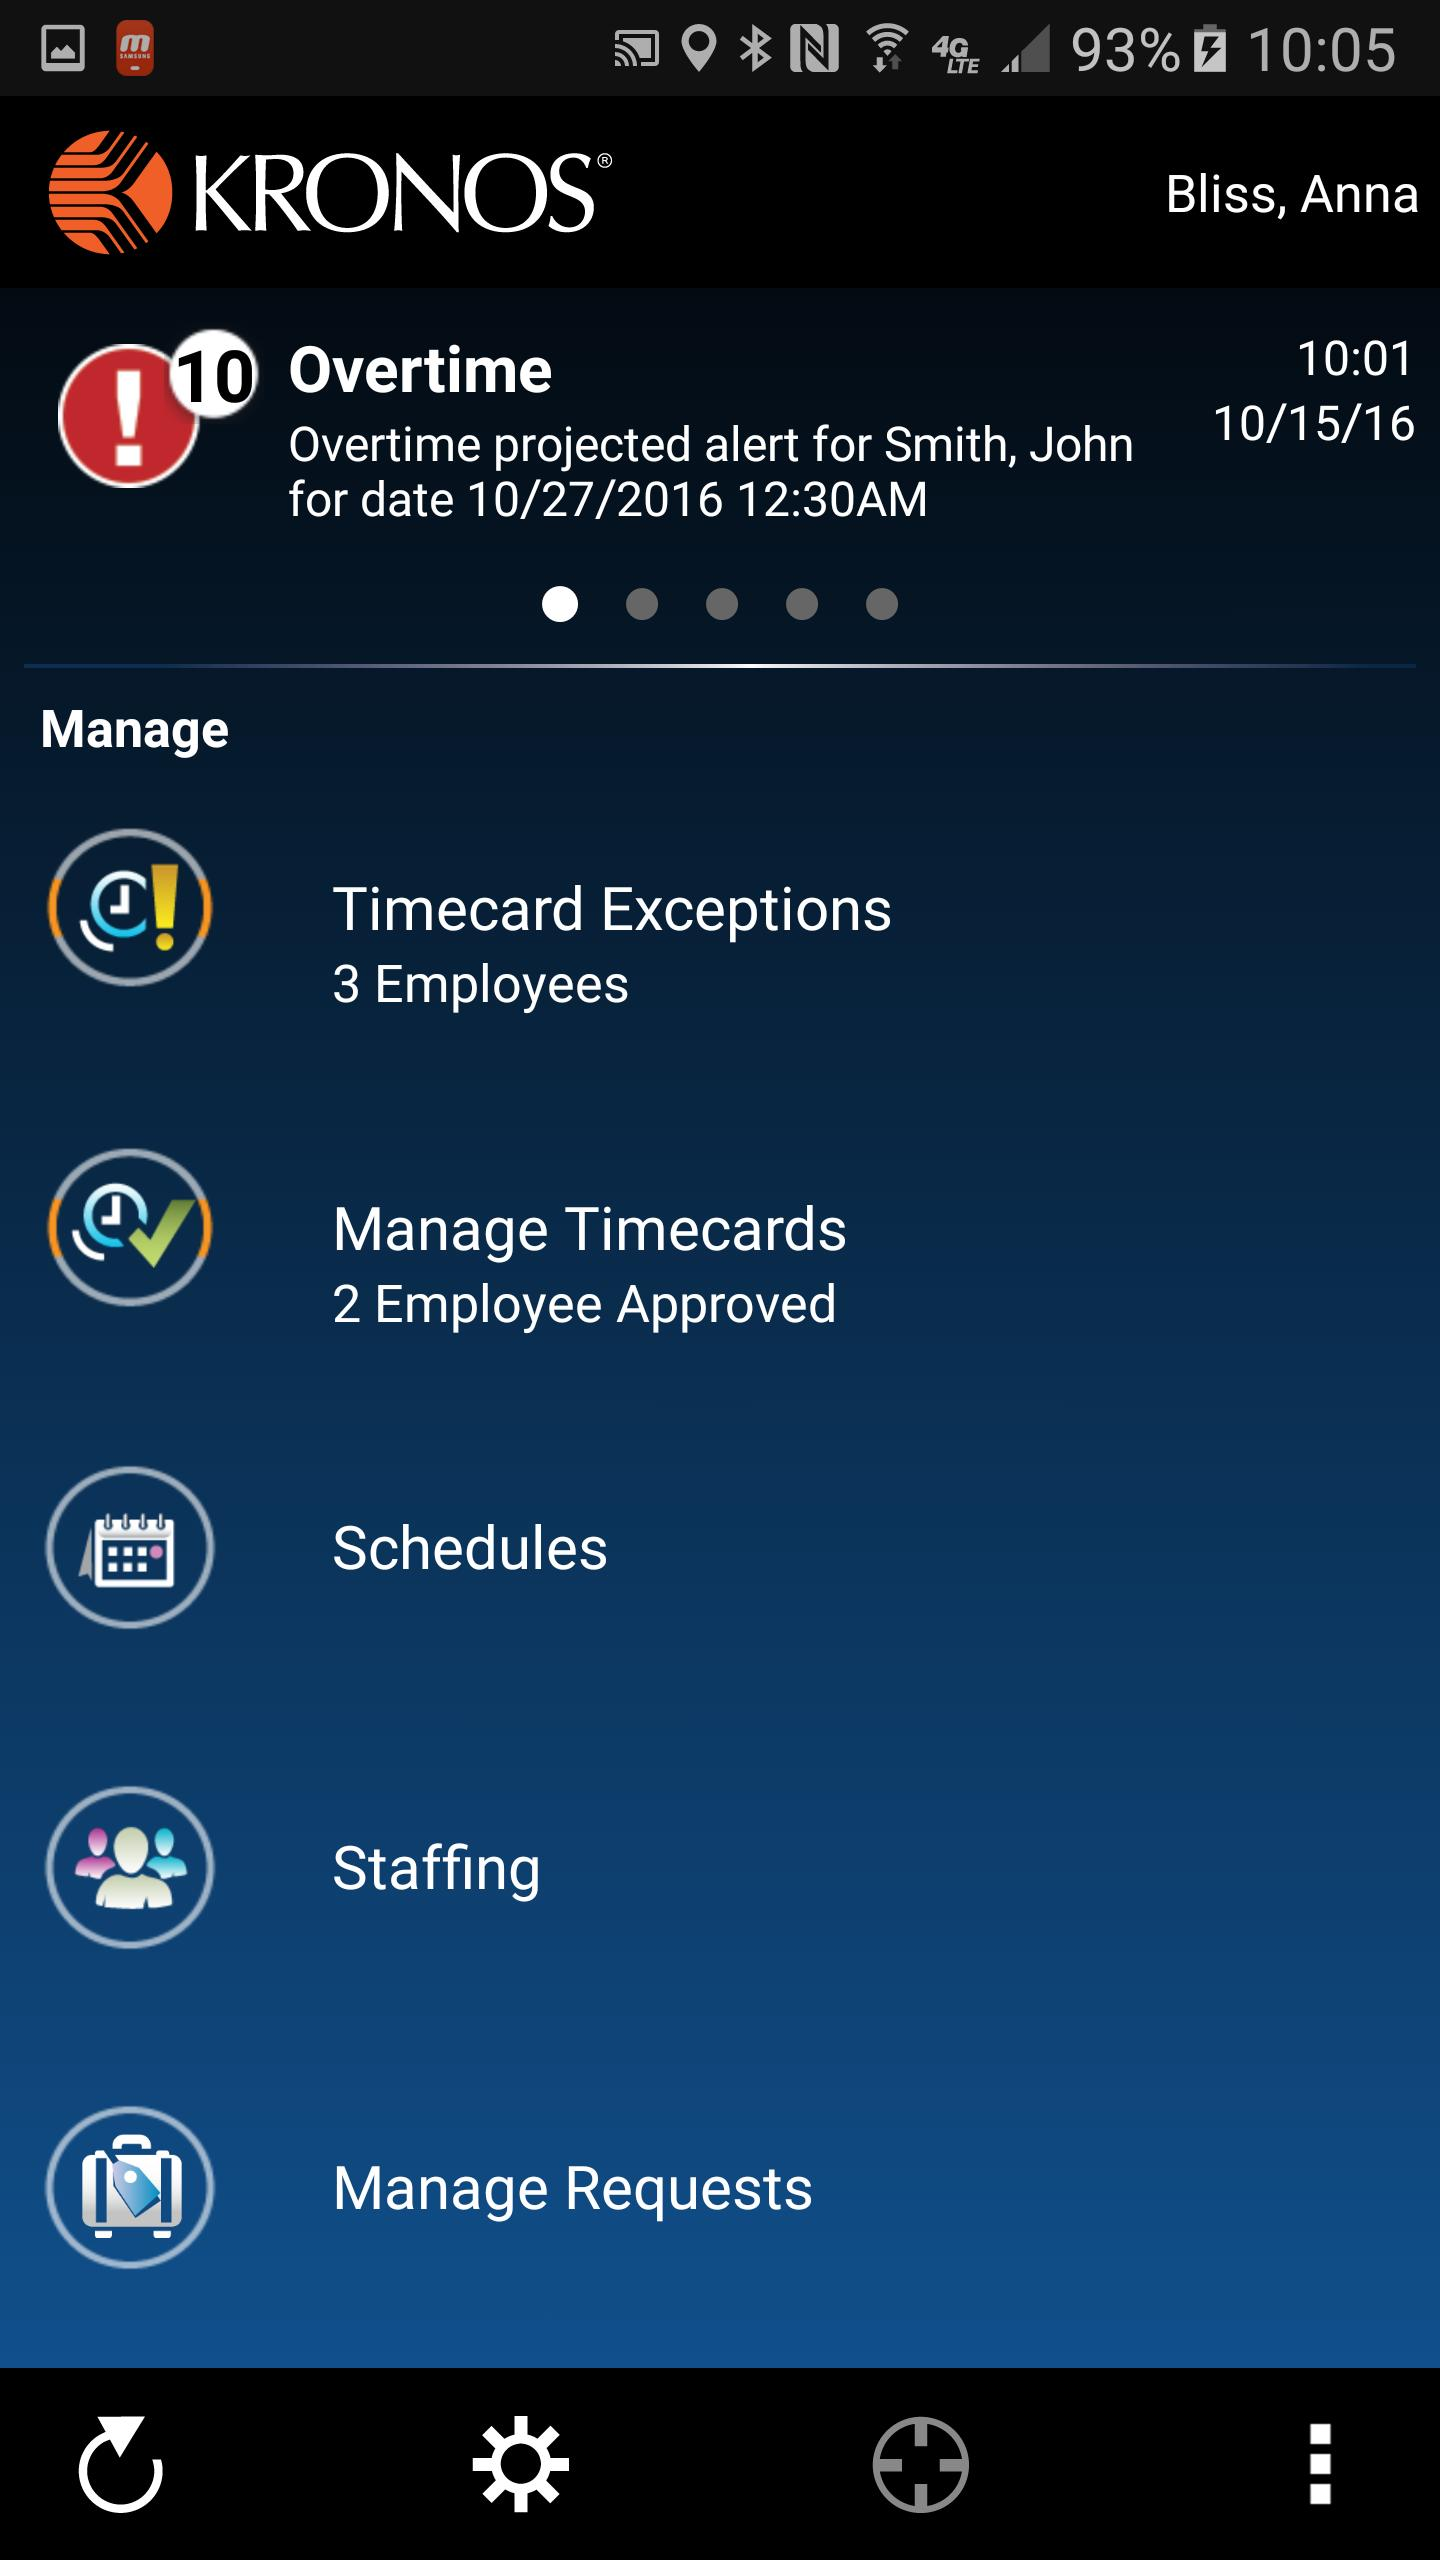 Kronos Mobile for Android - APK Download